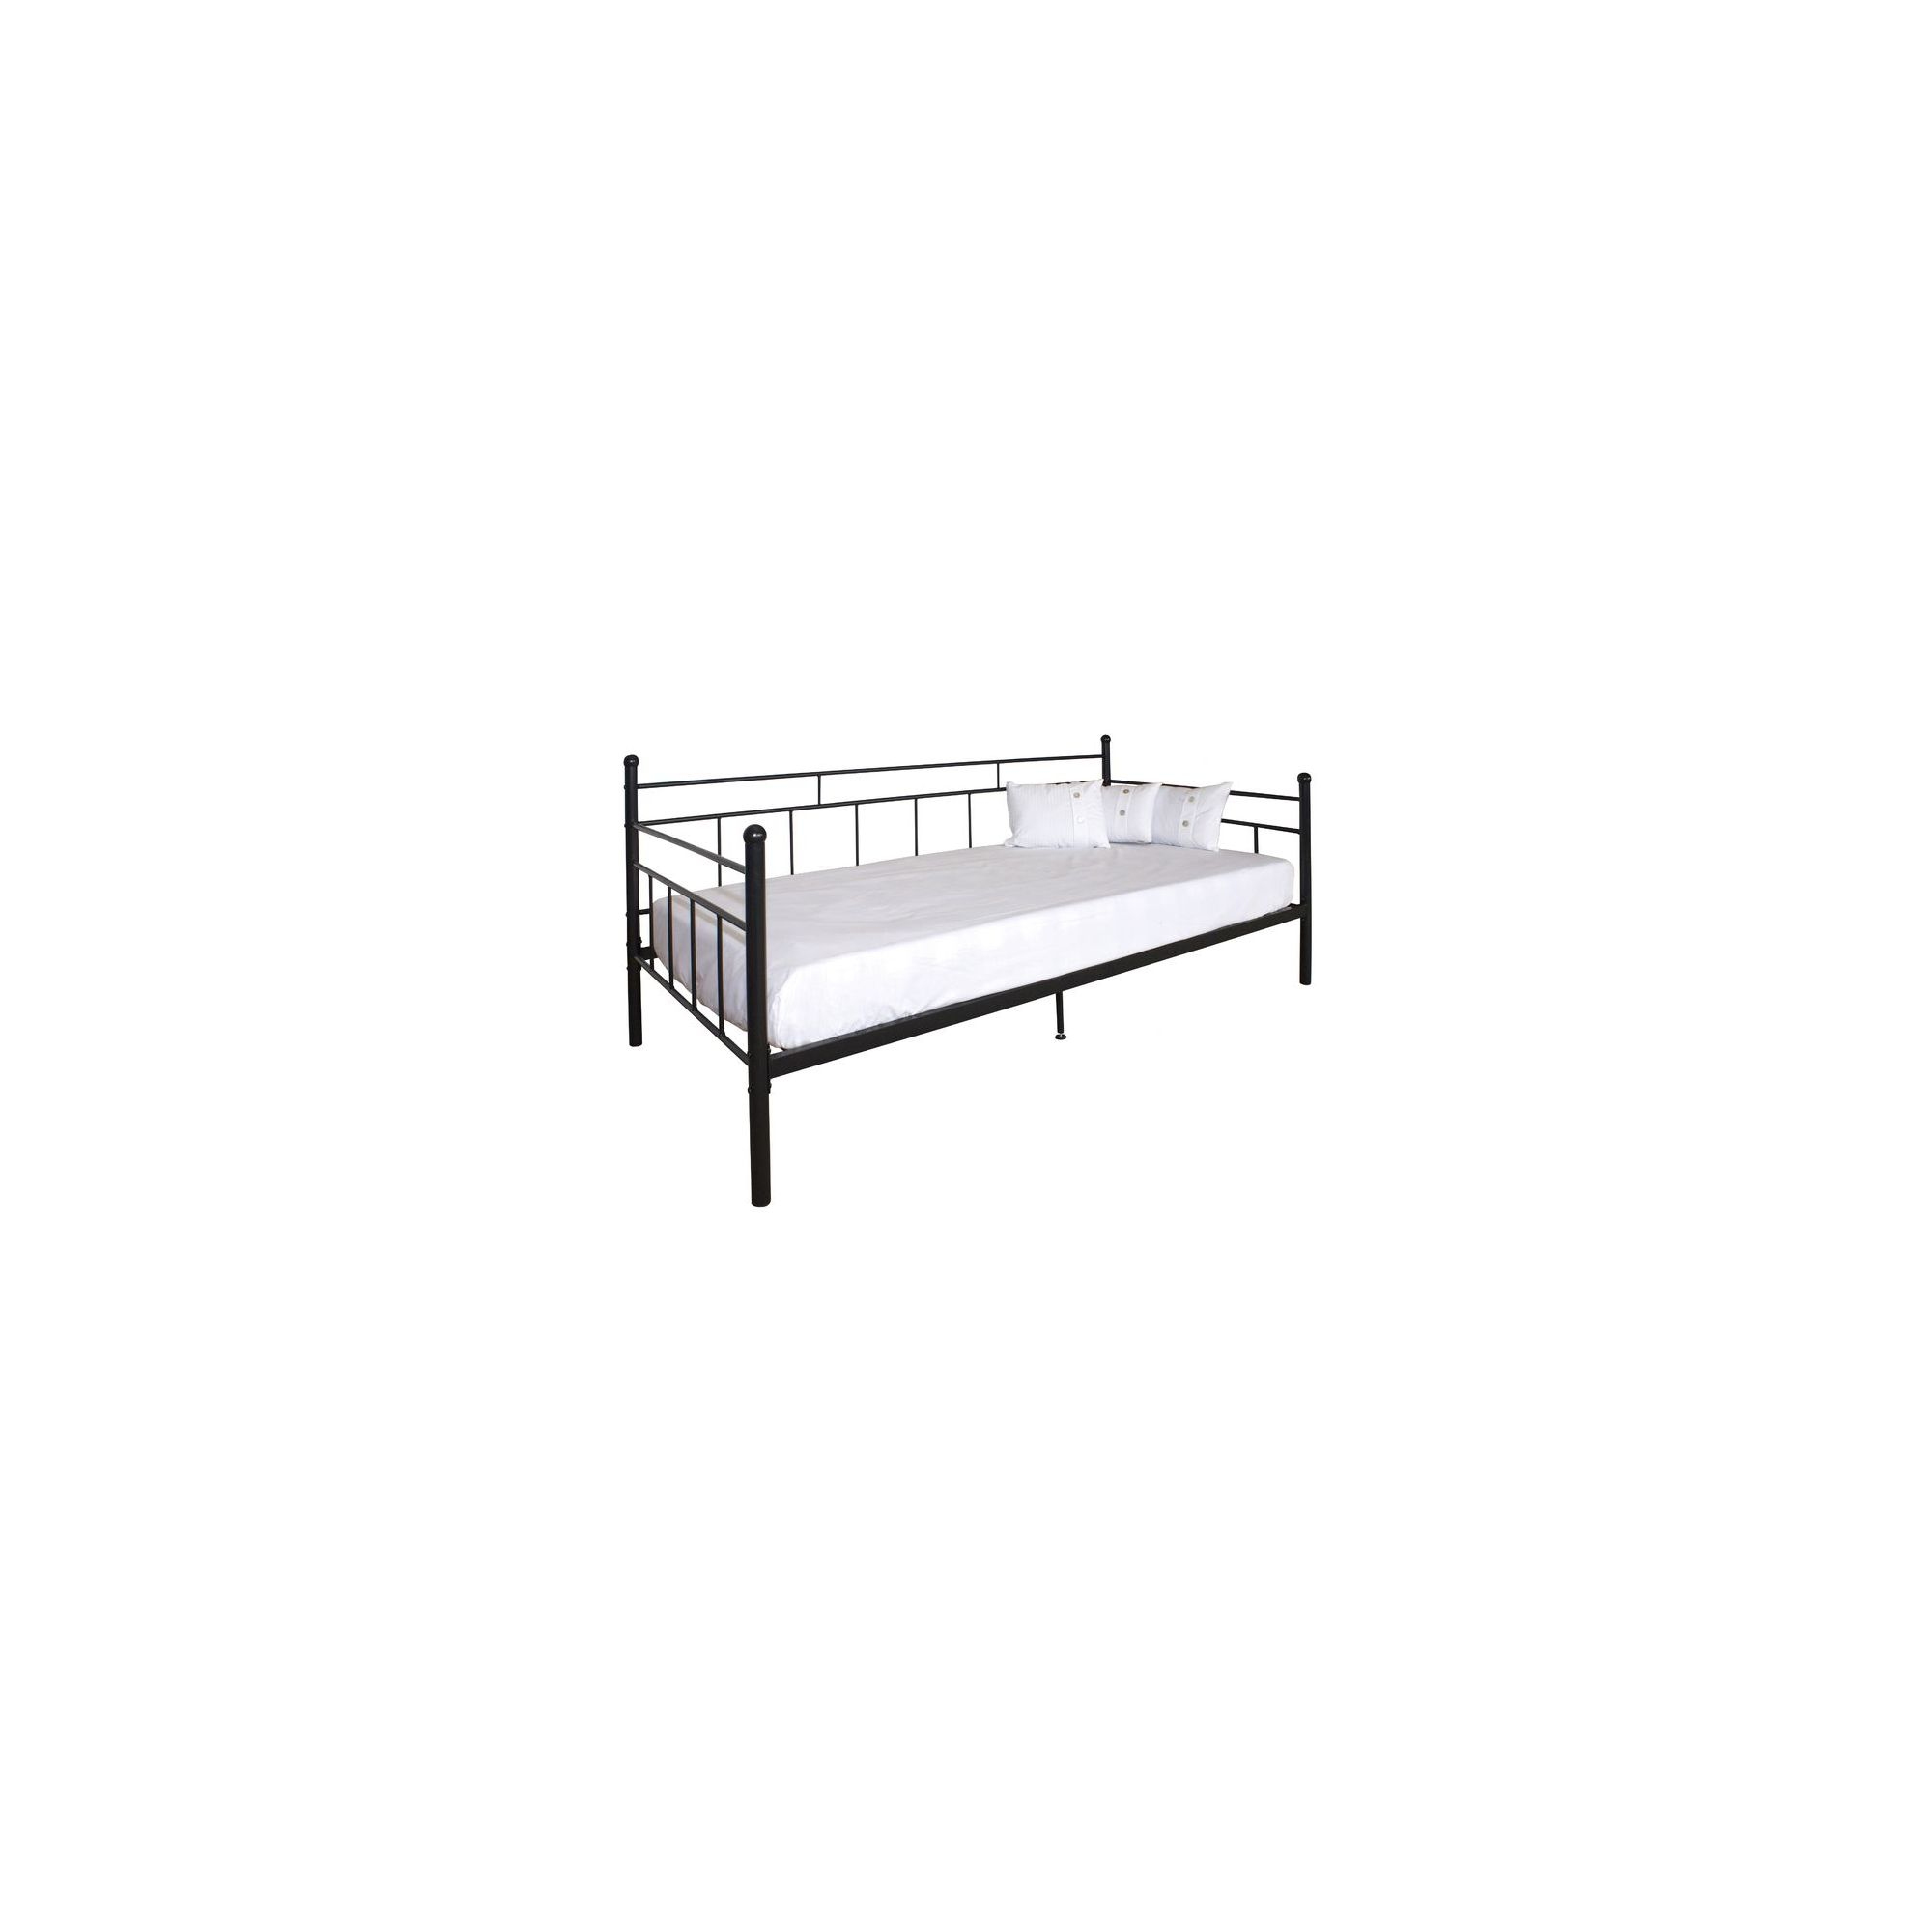 Gfw Arizona Day Bed Frame - Black